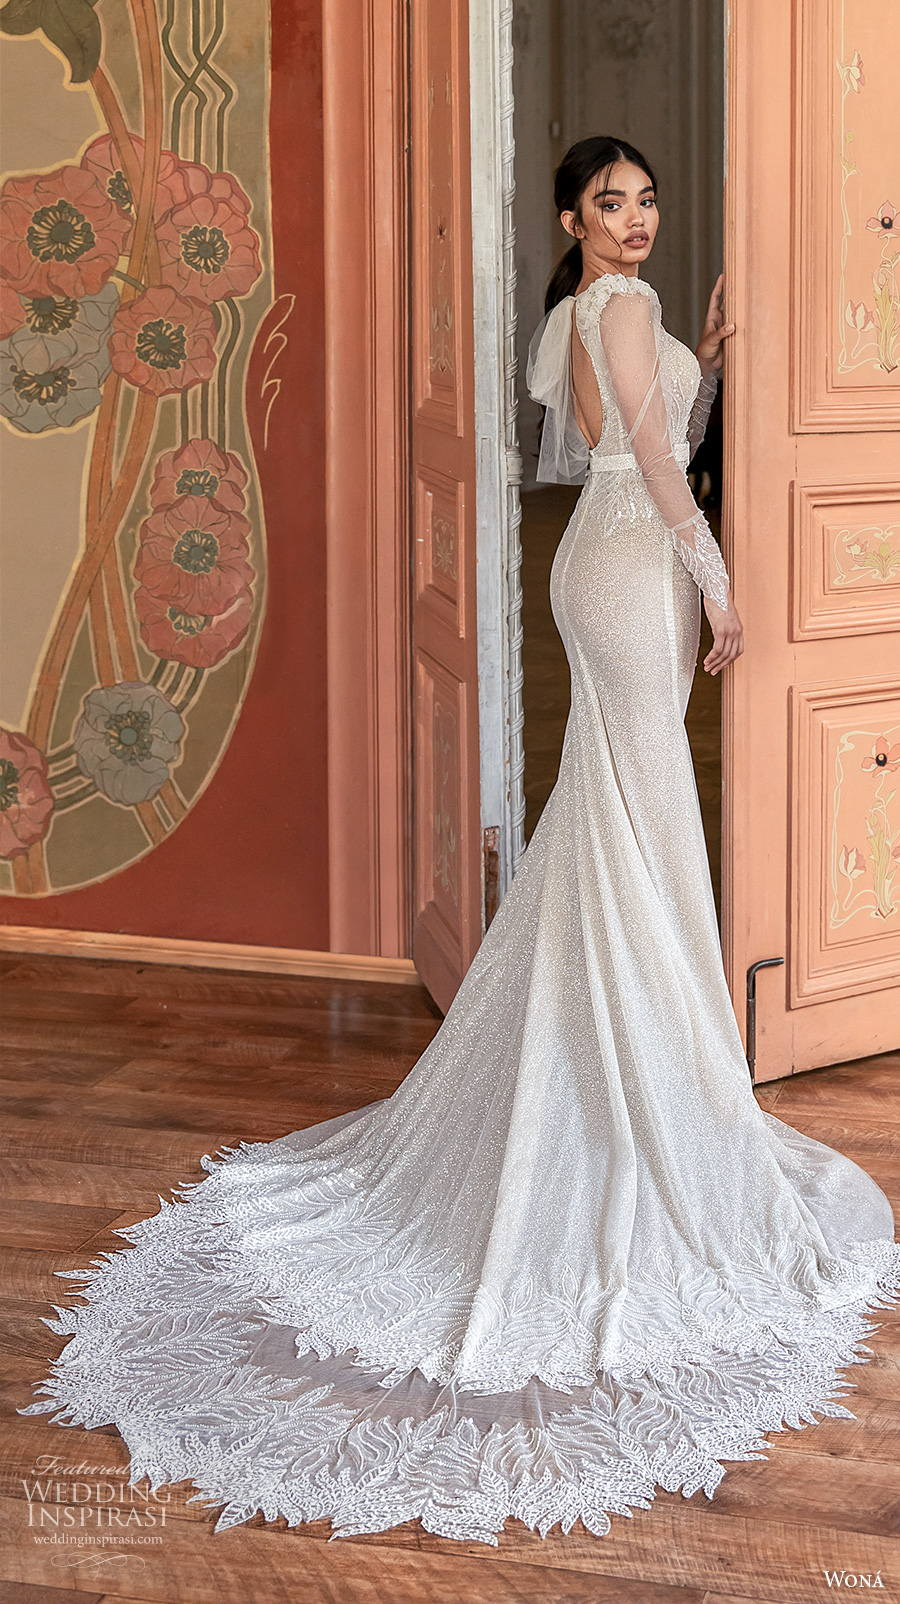 wona concept 2021 romance bridal long sleeves v neck lightly embellished bodice glamorous elgan fit and flare wedding dress keyhole back chapel train (8) bv